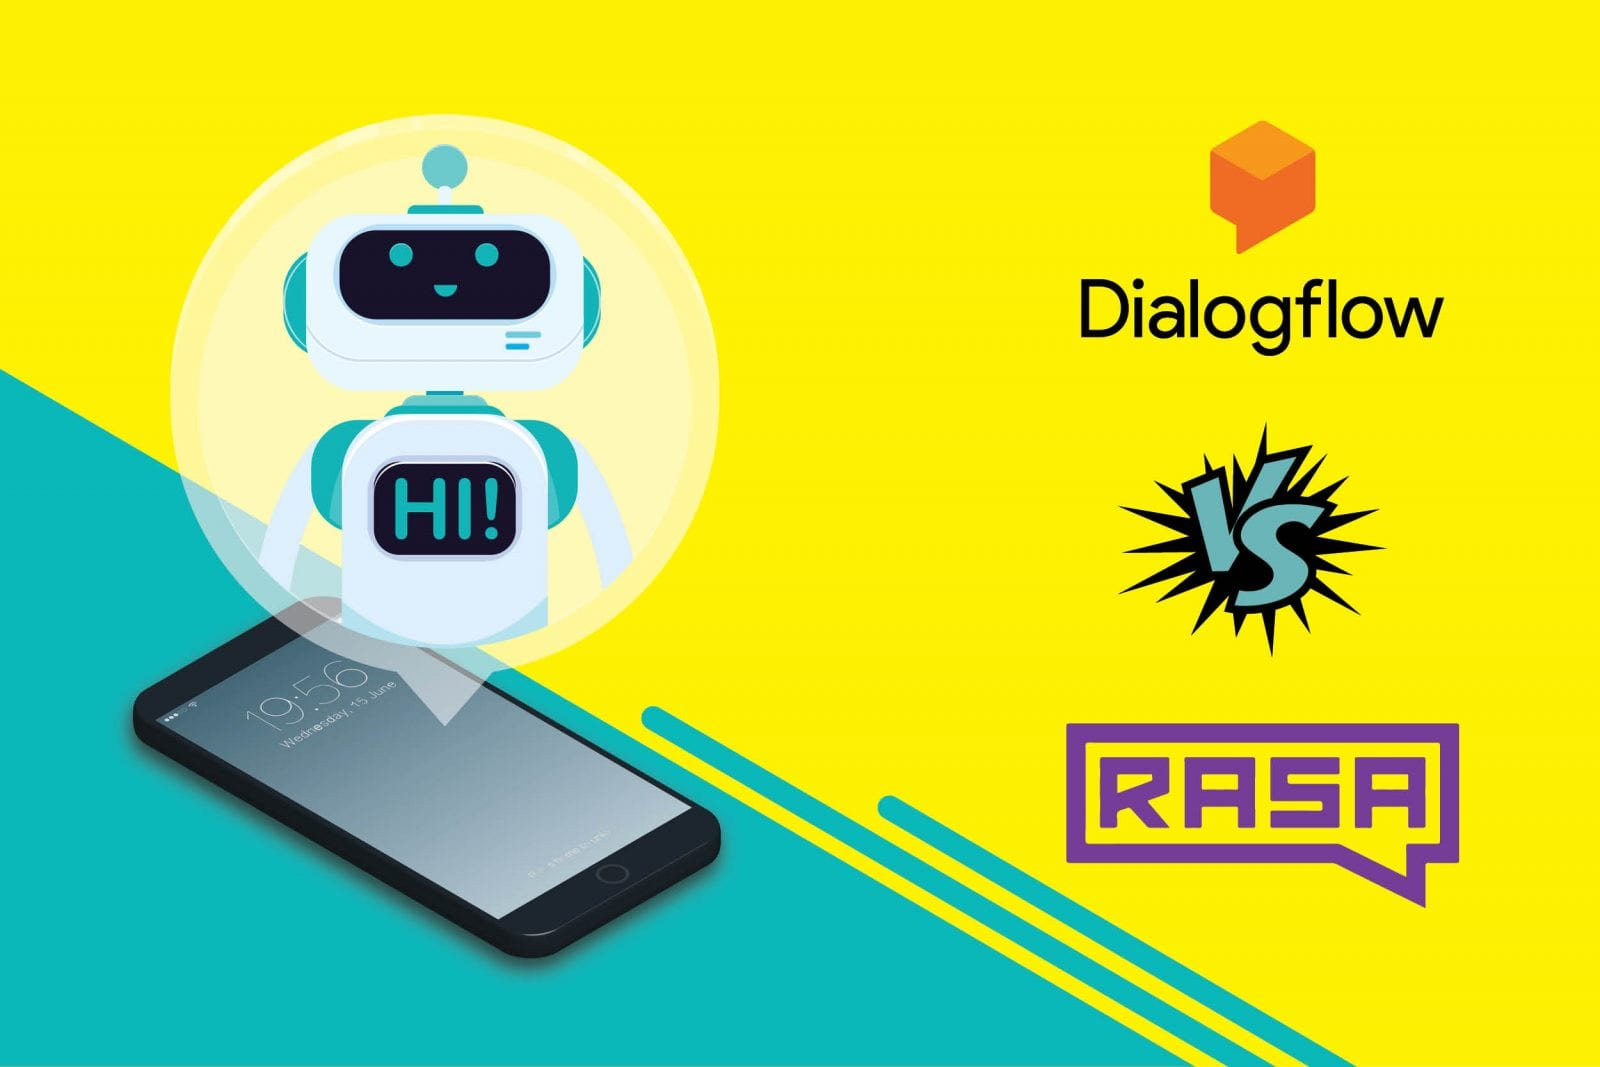 Dialogflow vs Rasa comparision